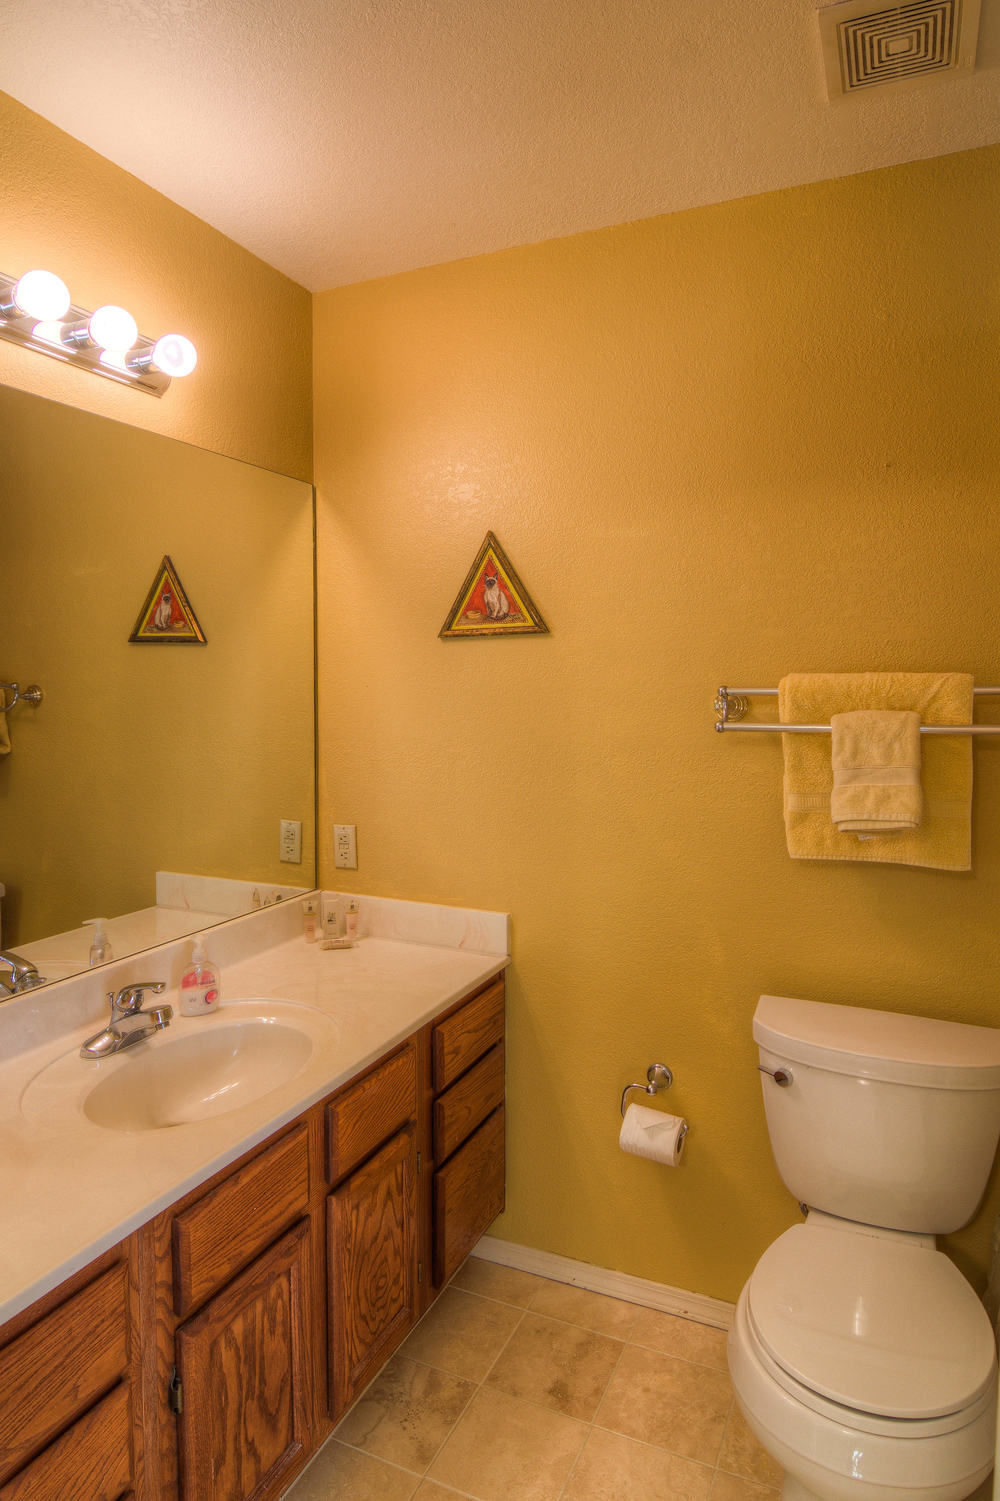 14 cottage bathroom 1-2.jpg